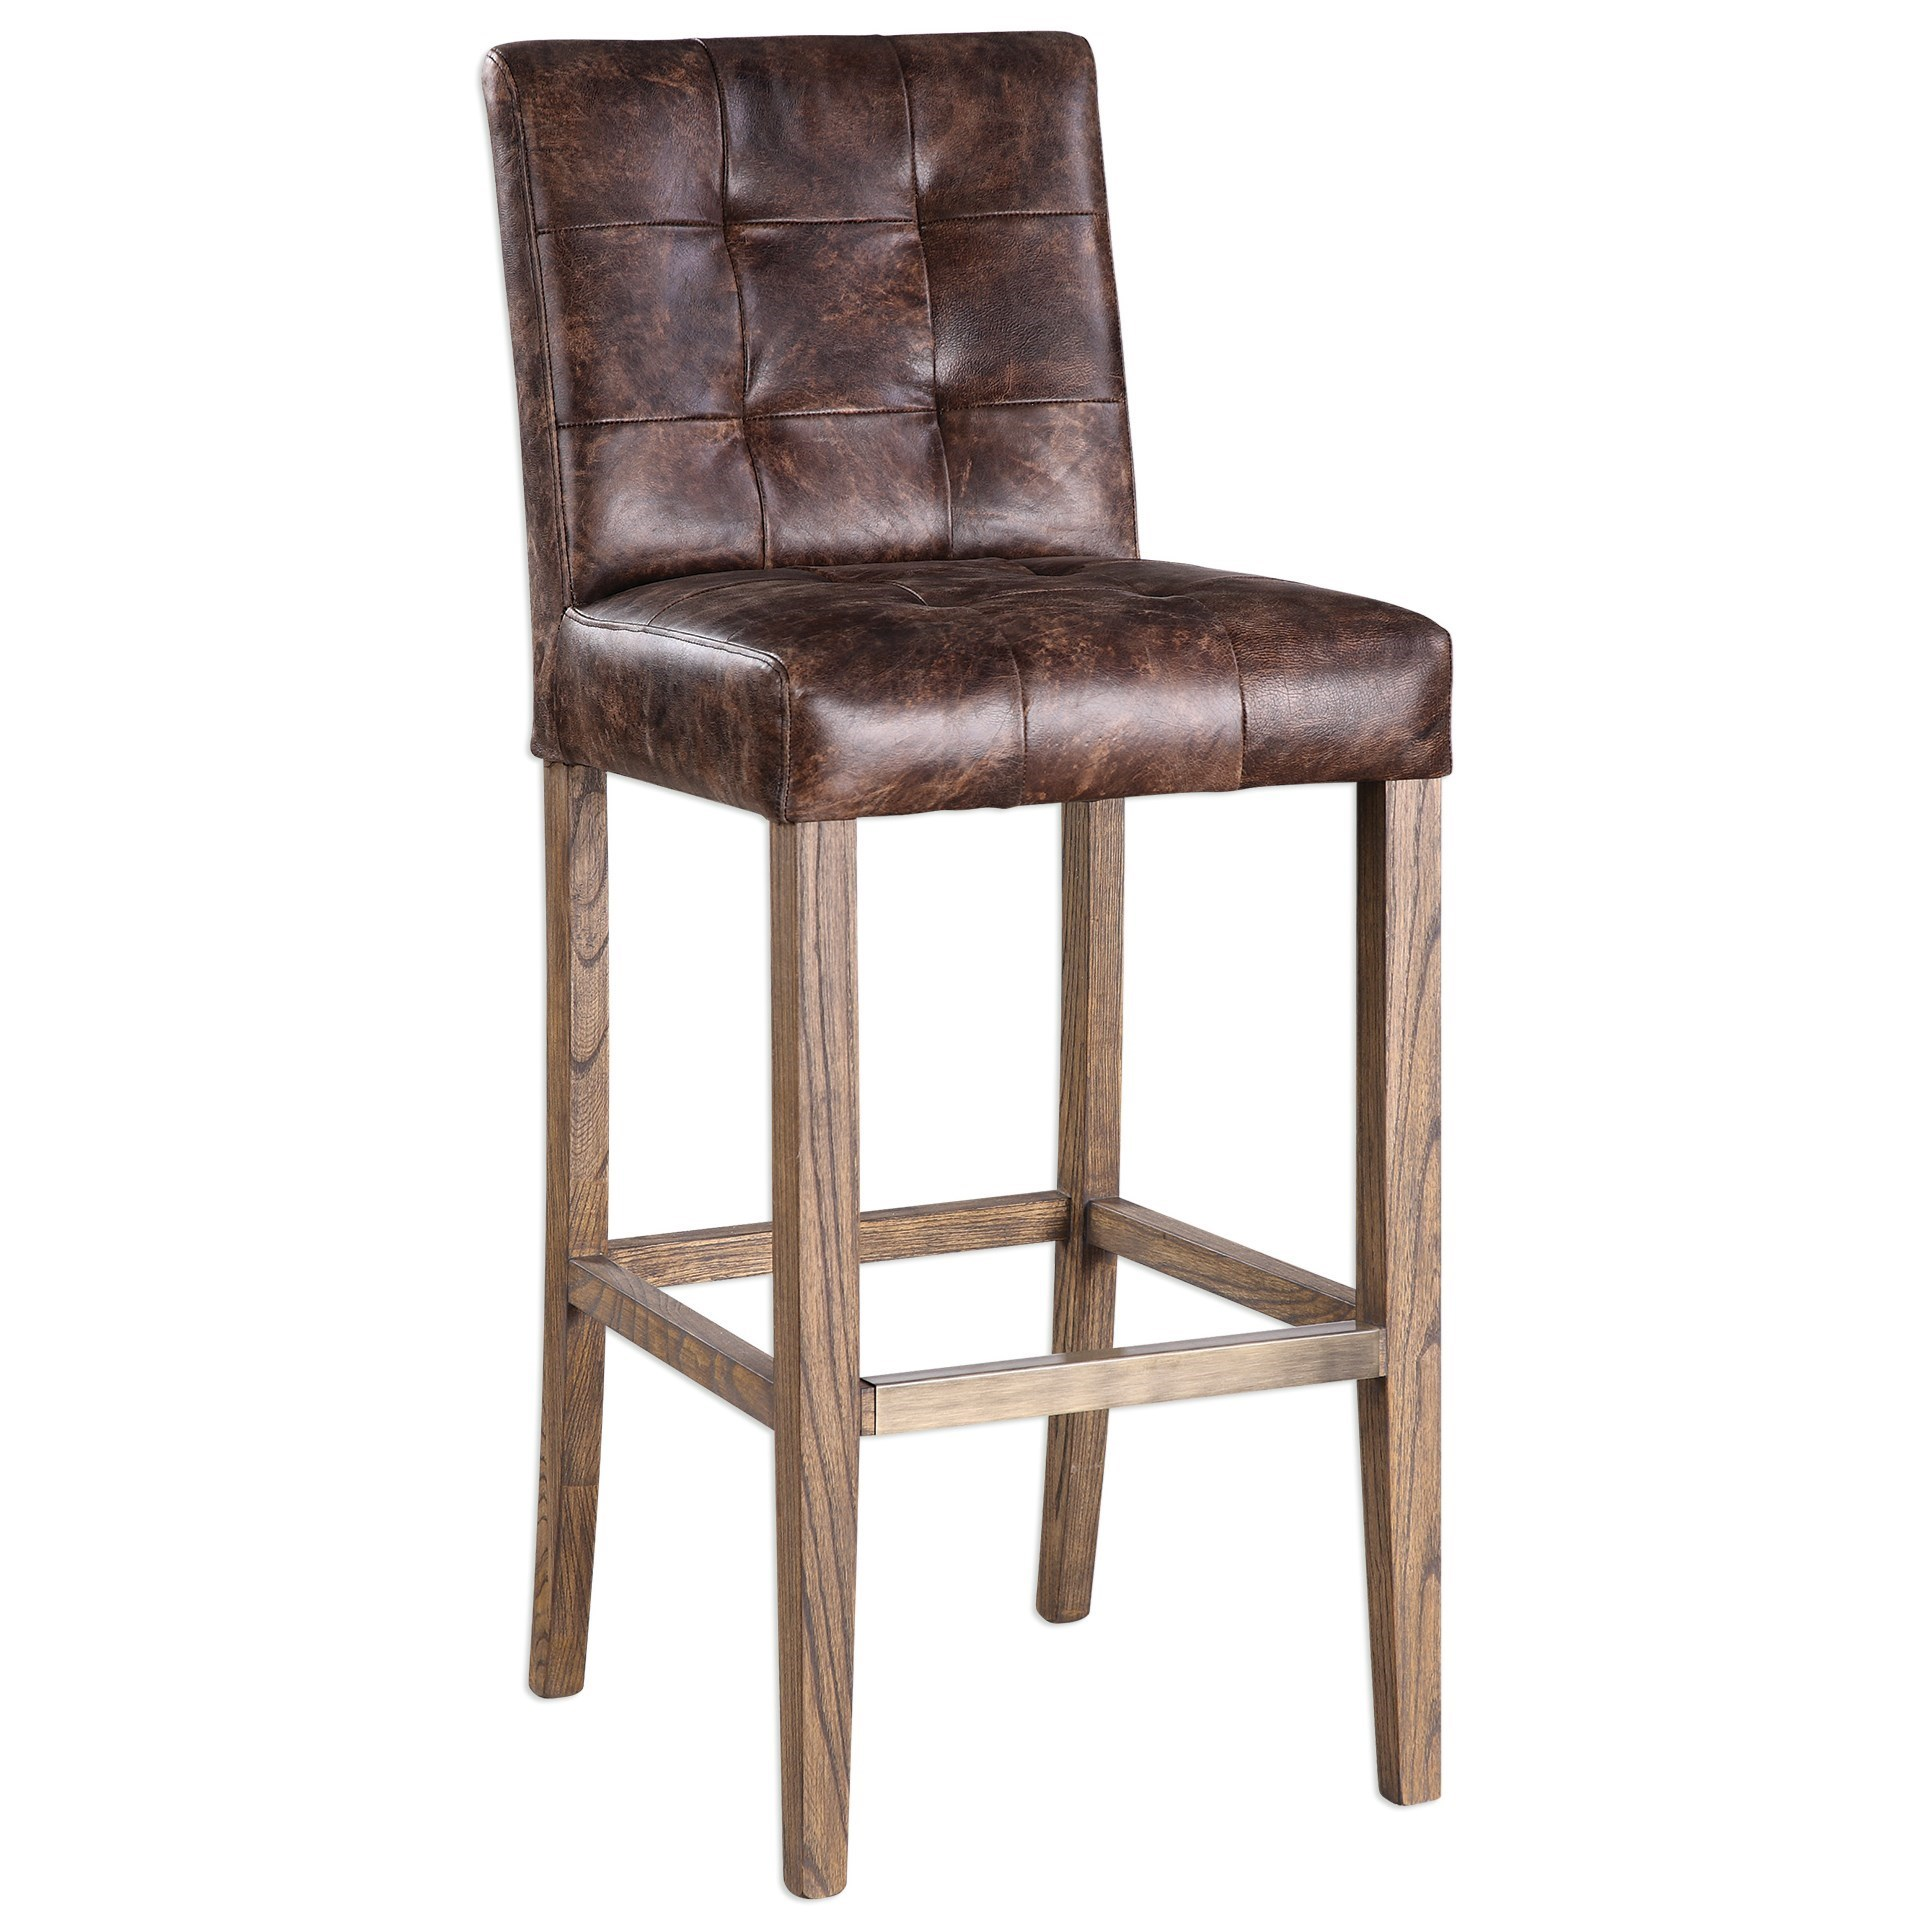 Uttermost Accent Furniture  Julian Tufted Bar Stool - Item Number: 23330